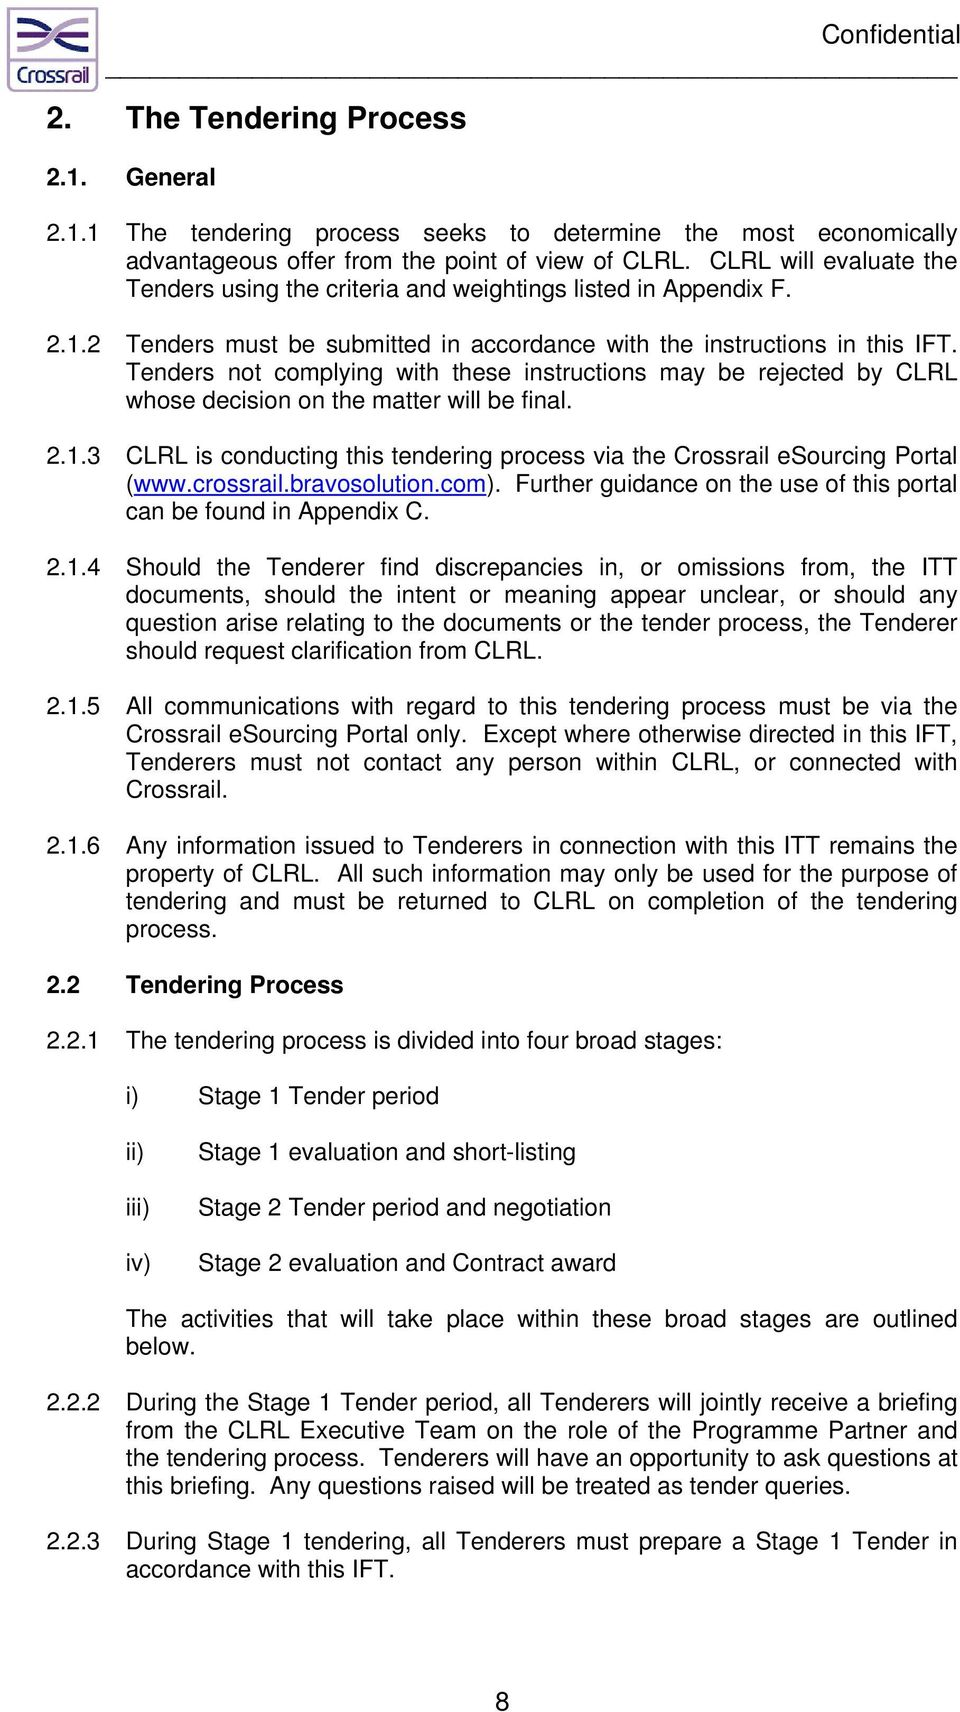 Tenders not complying with these instructions may be rejected by CLRL whose decision on the matter will be final. 2.1.